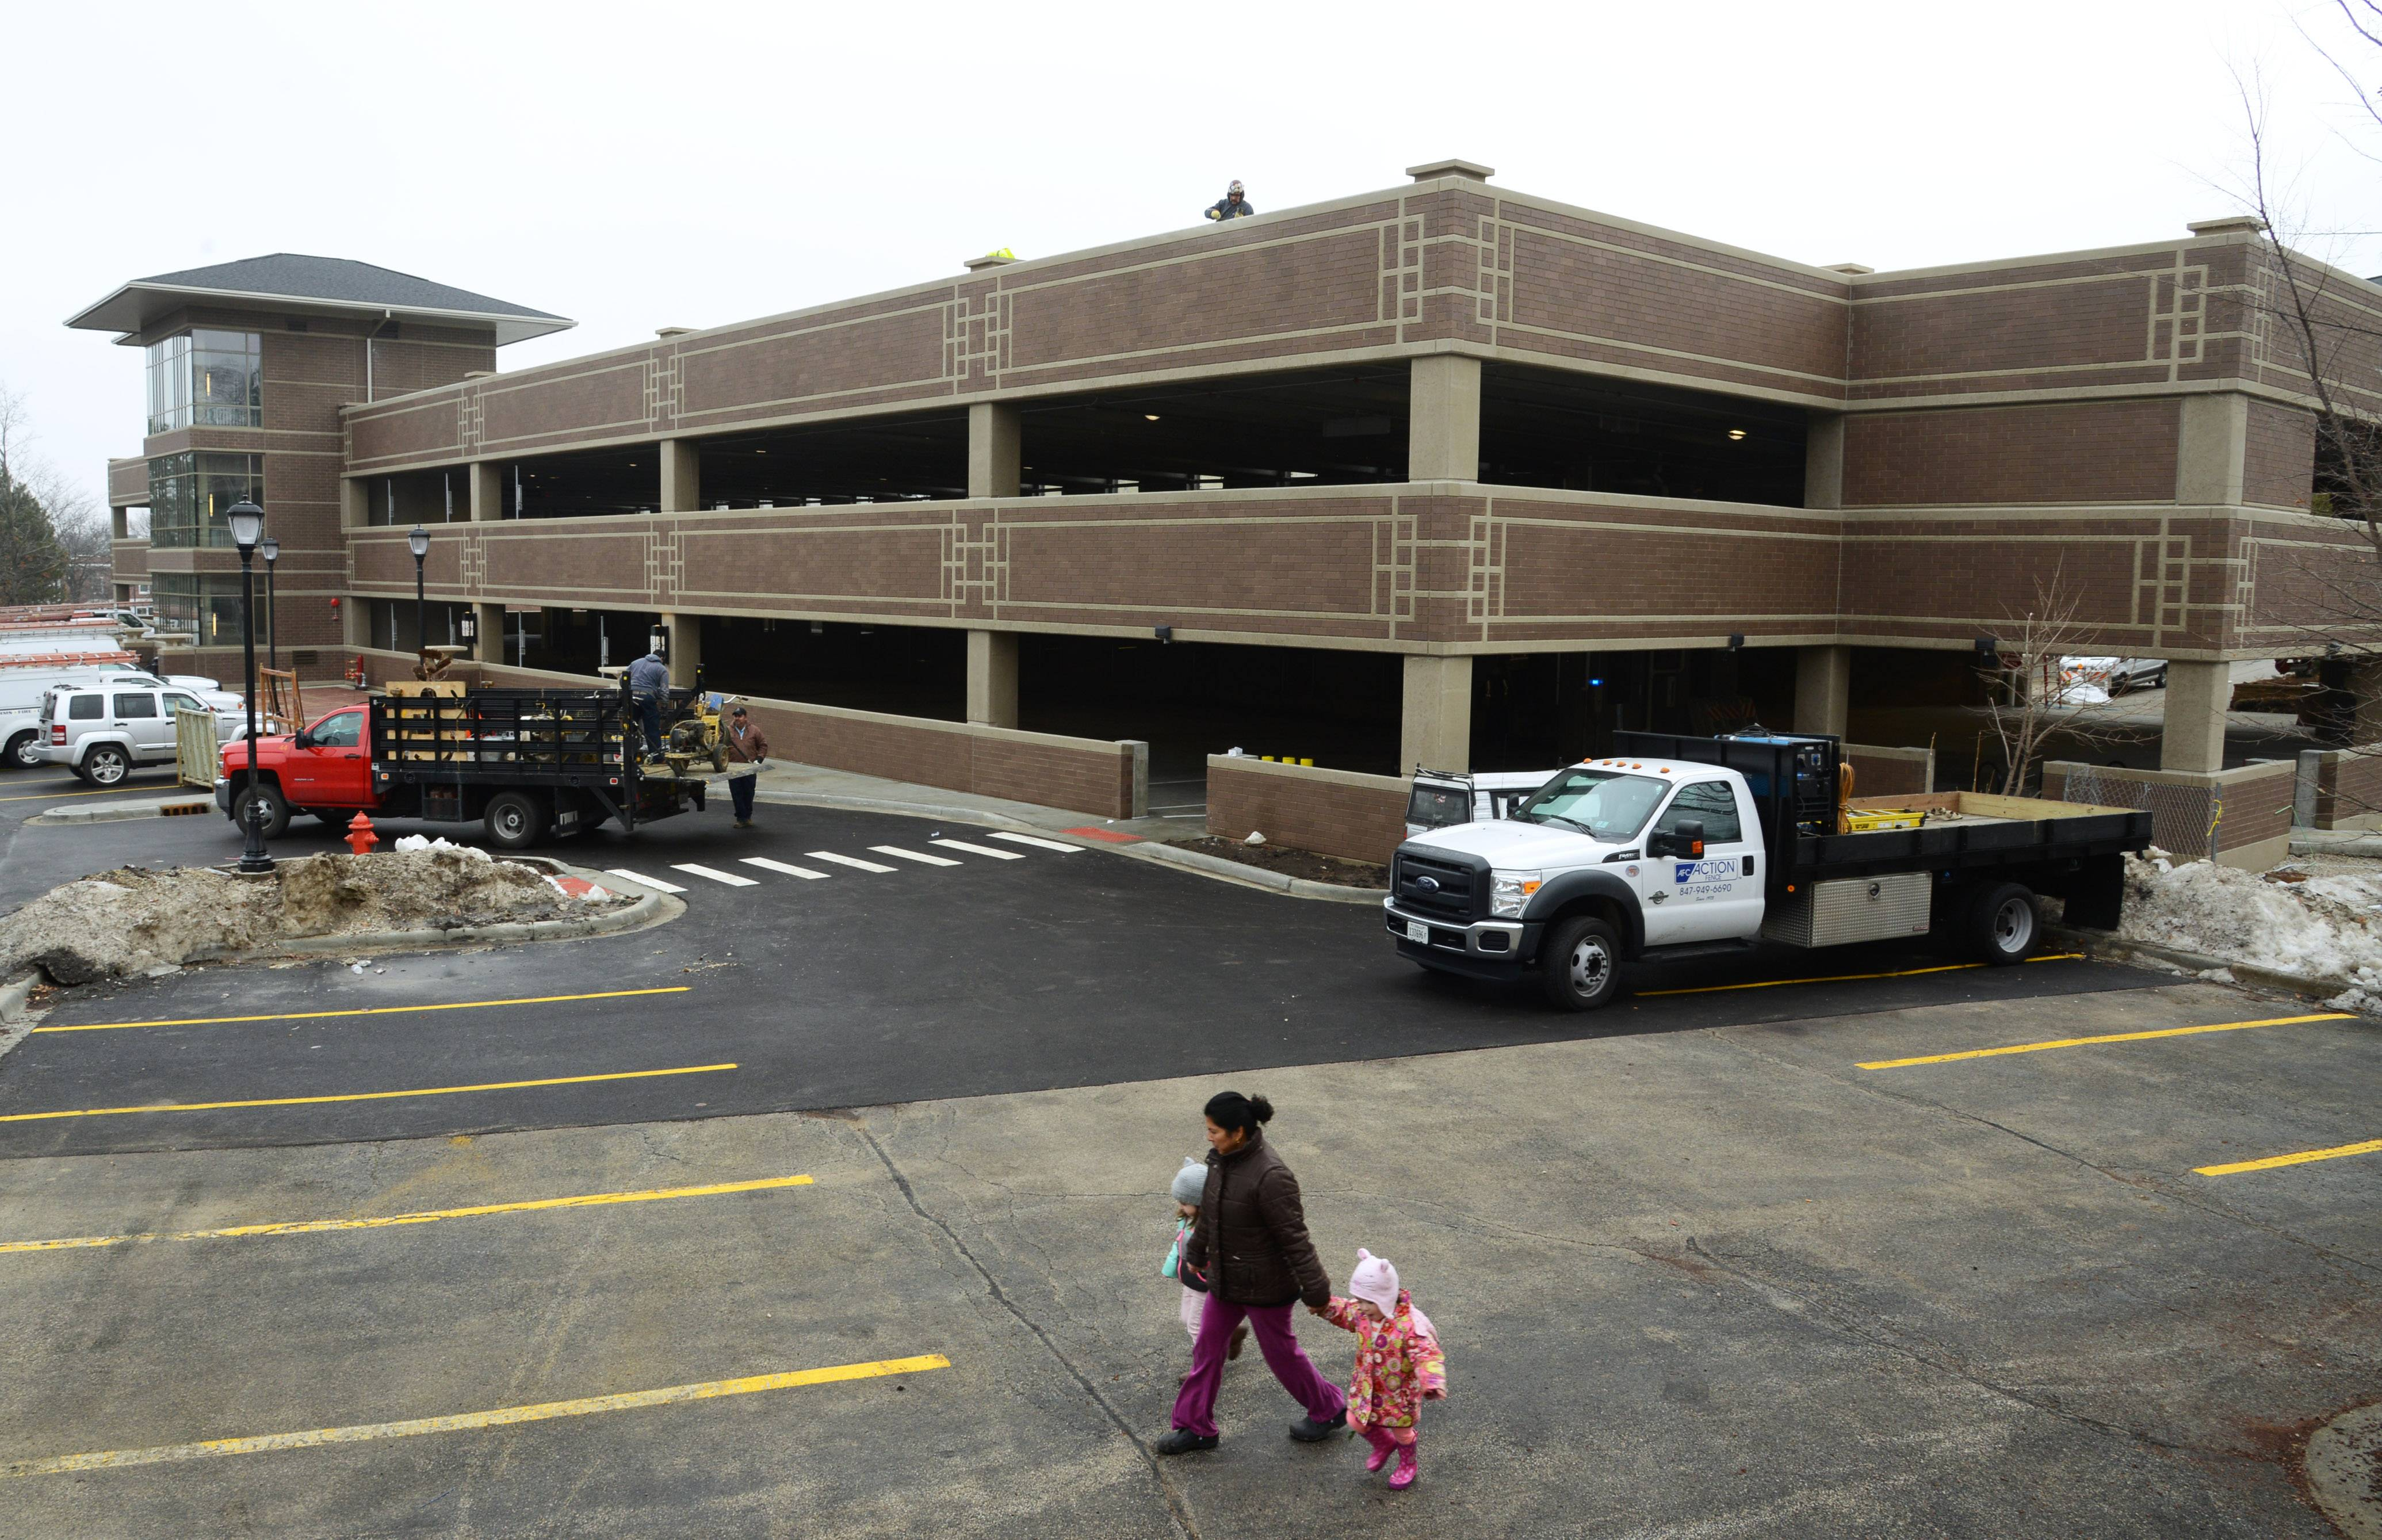 Parking problems plague successful downtowns. Libertyville recently added a second parking deck.